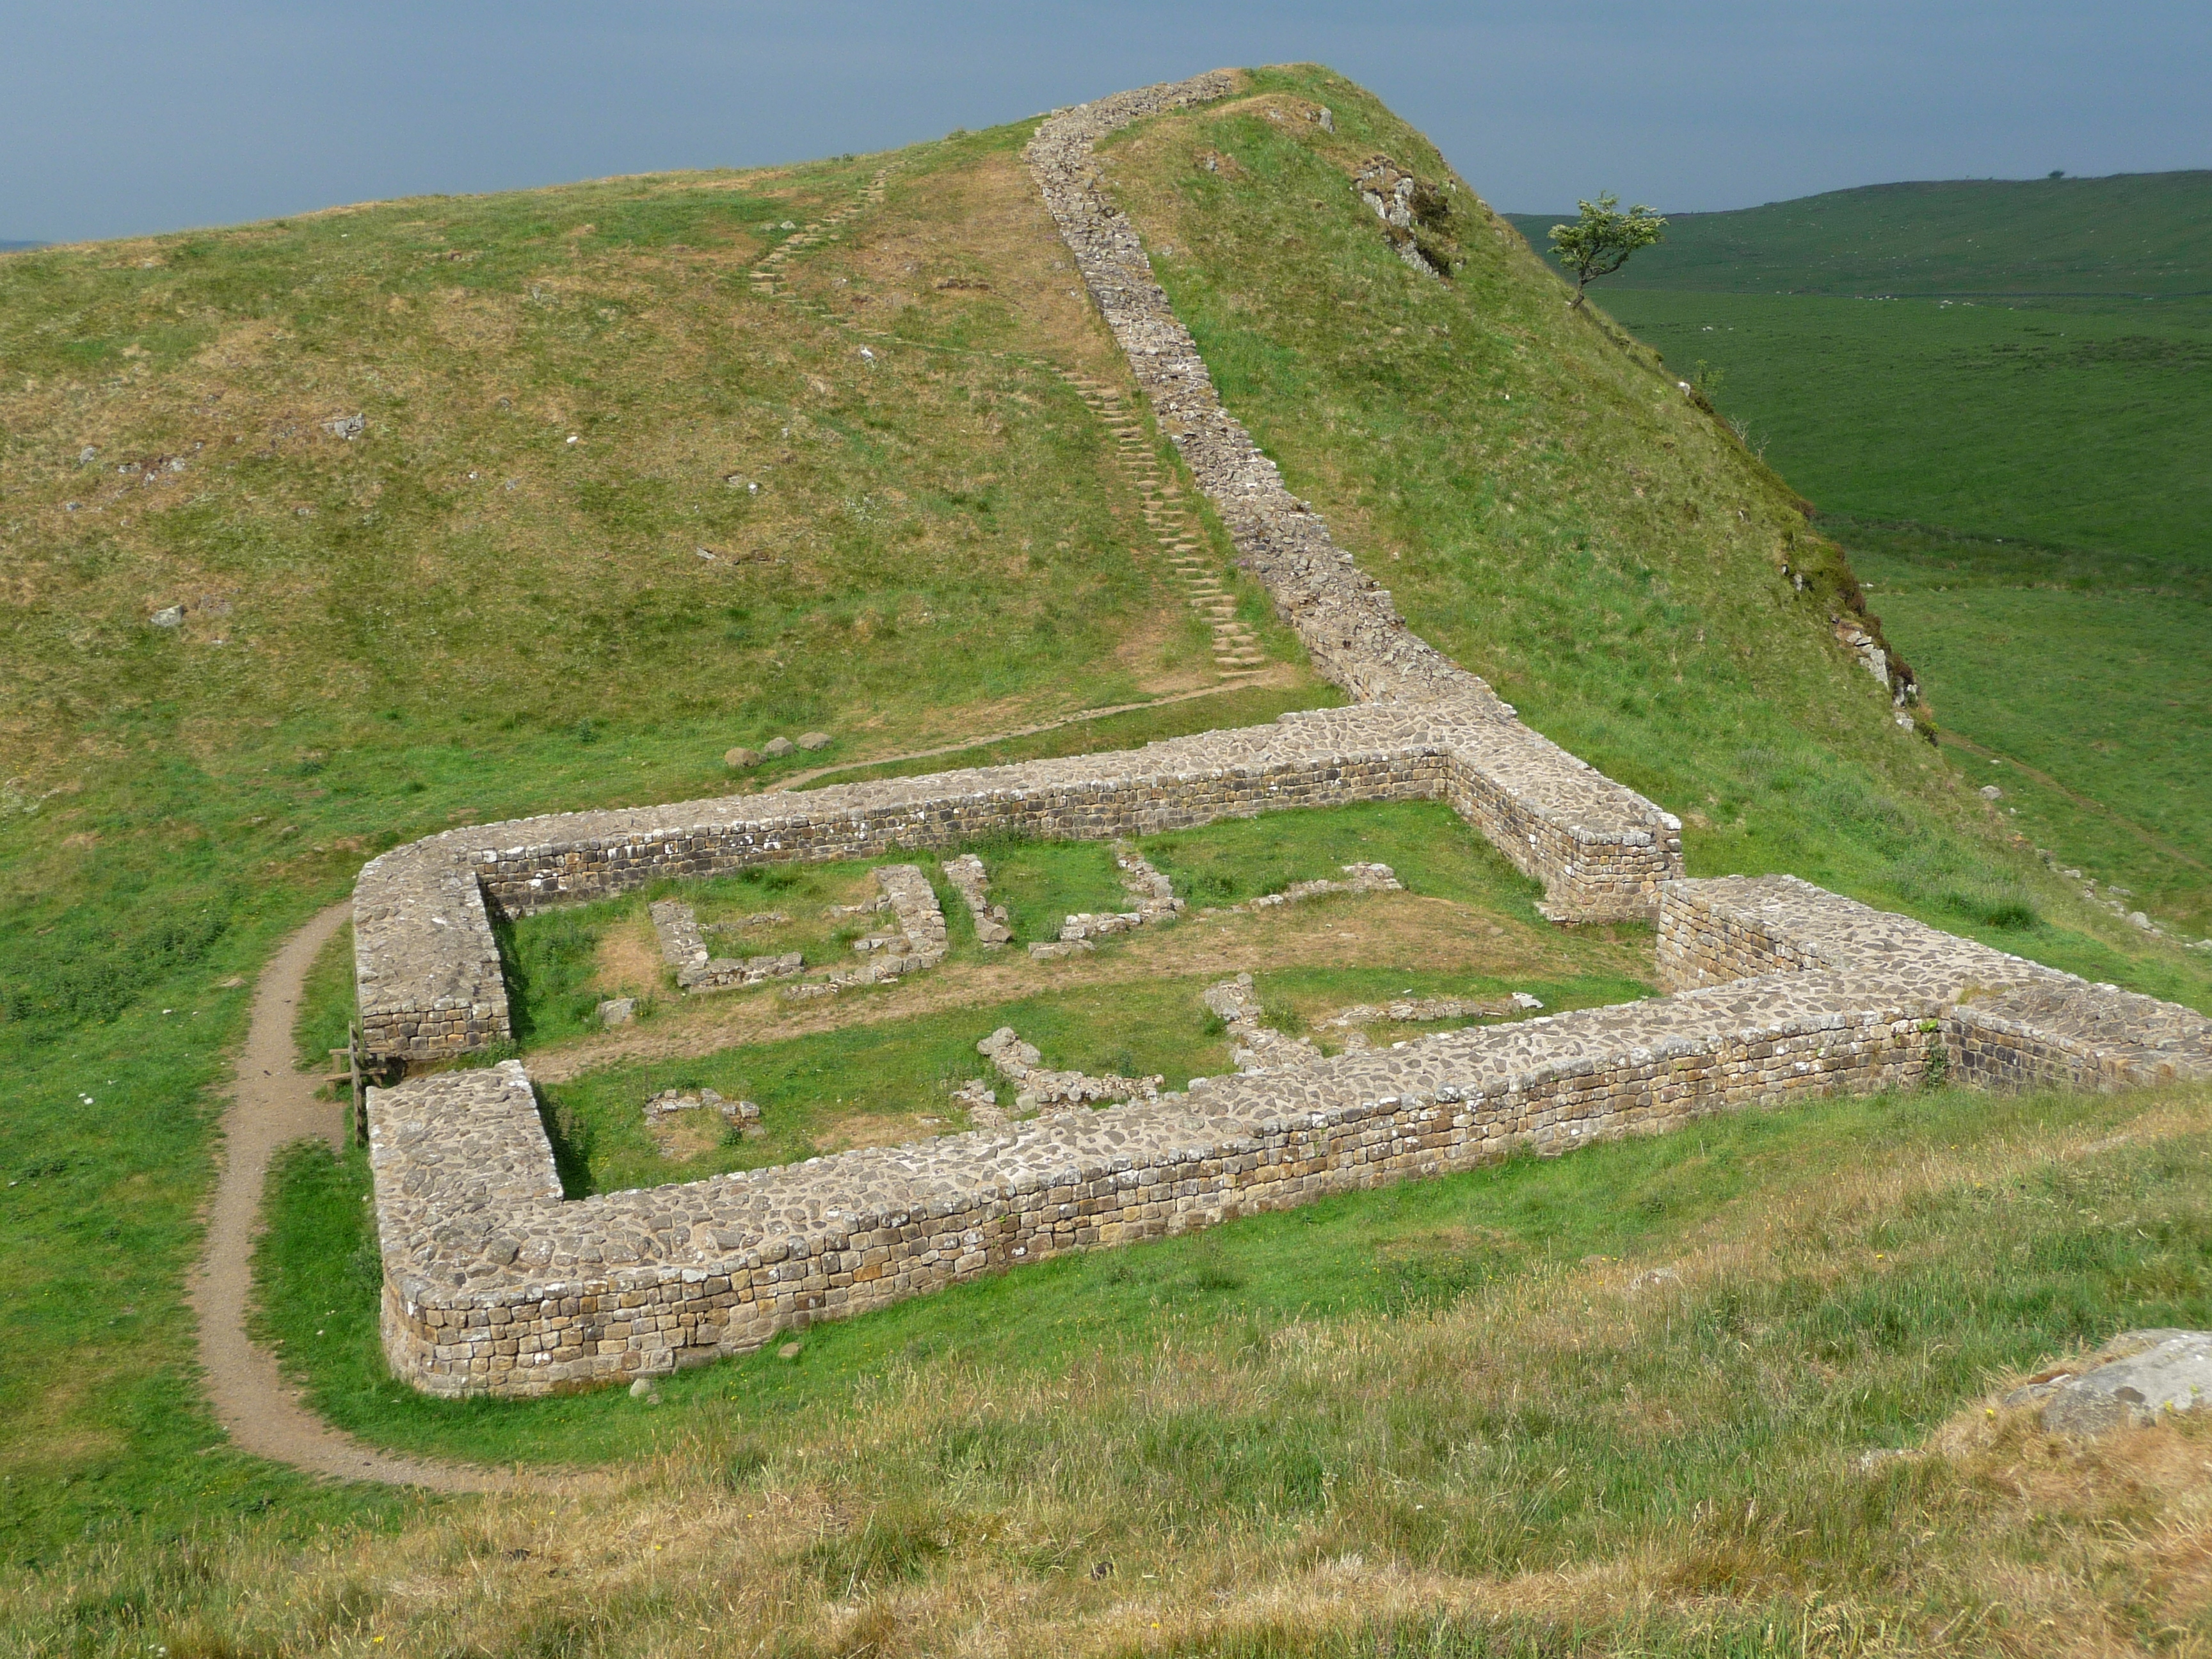 One of the best remains of a milecastle built by the Romans to allow passage through the wall.